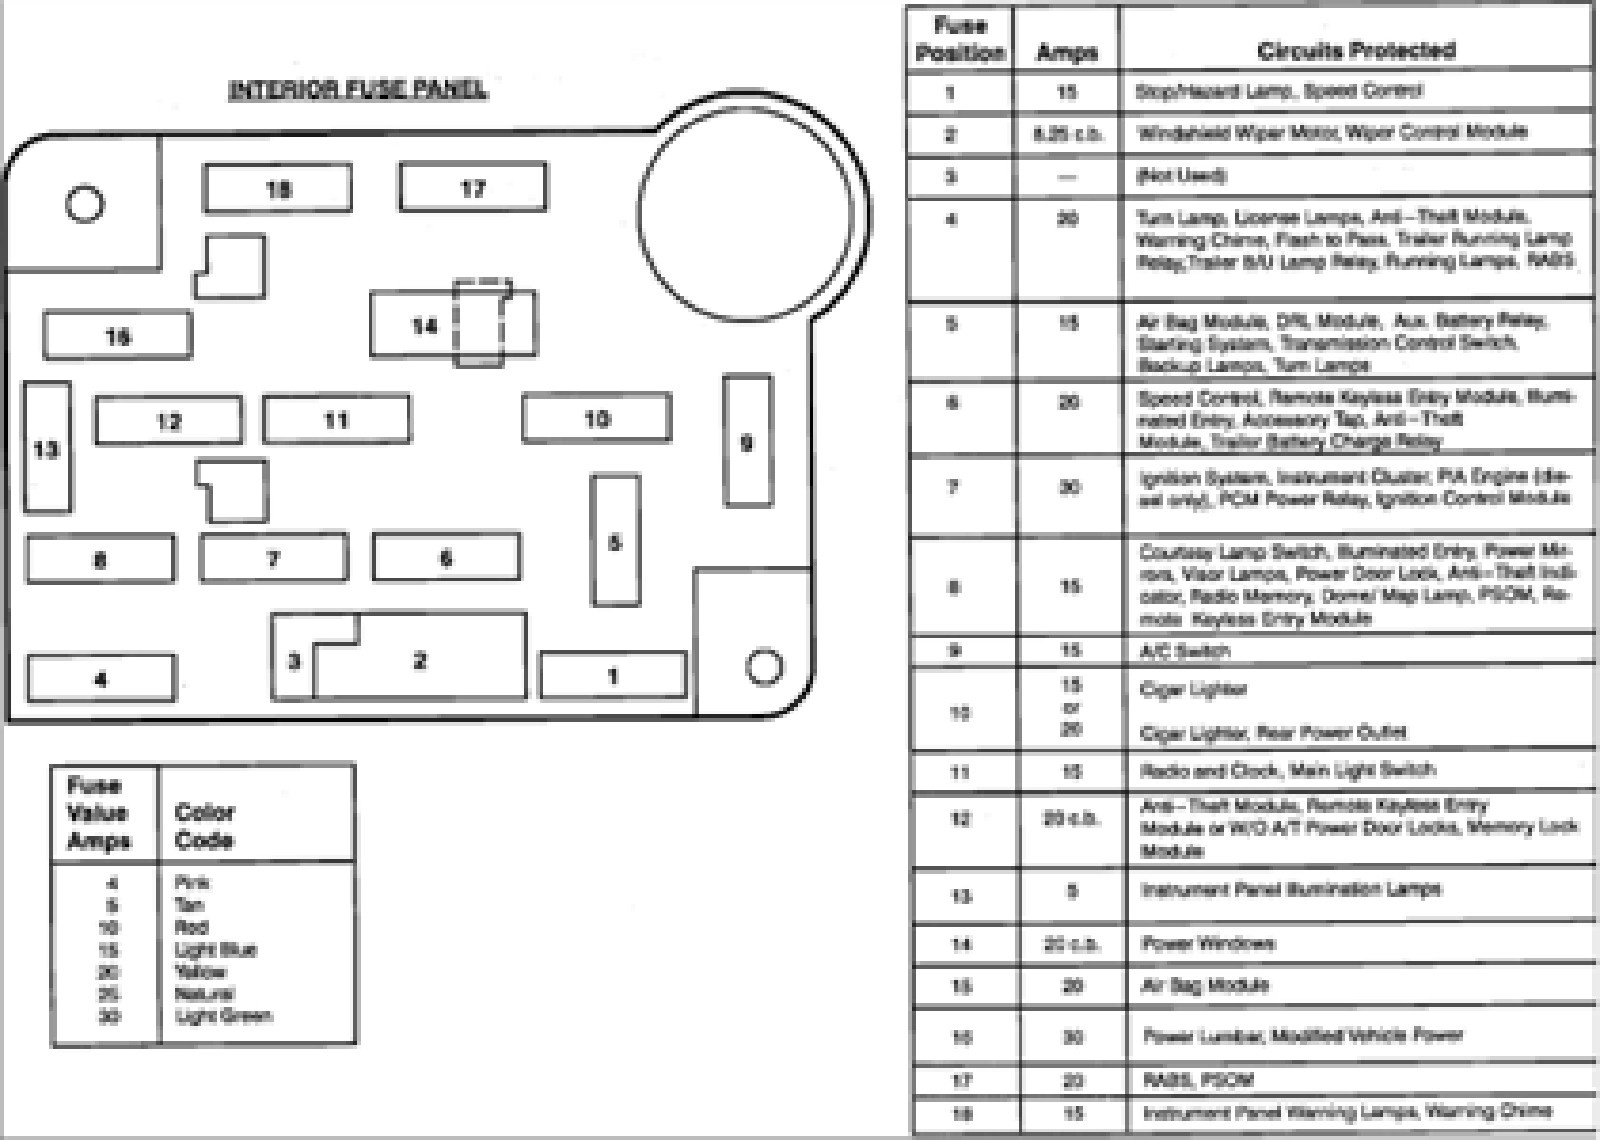 f100 fuse box ford e fuse box ford wiring diagrams ford mustang 2003 Mustang Fuse Box Diagram ford e fuse box ford wiring diagrams 2003 mustang fuse box diagram